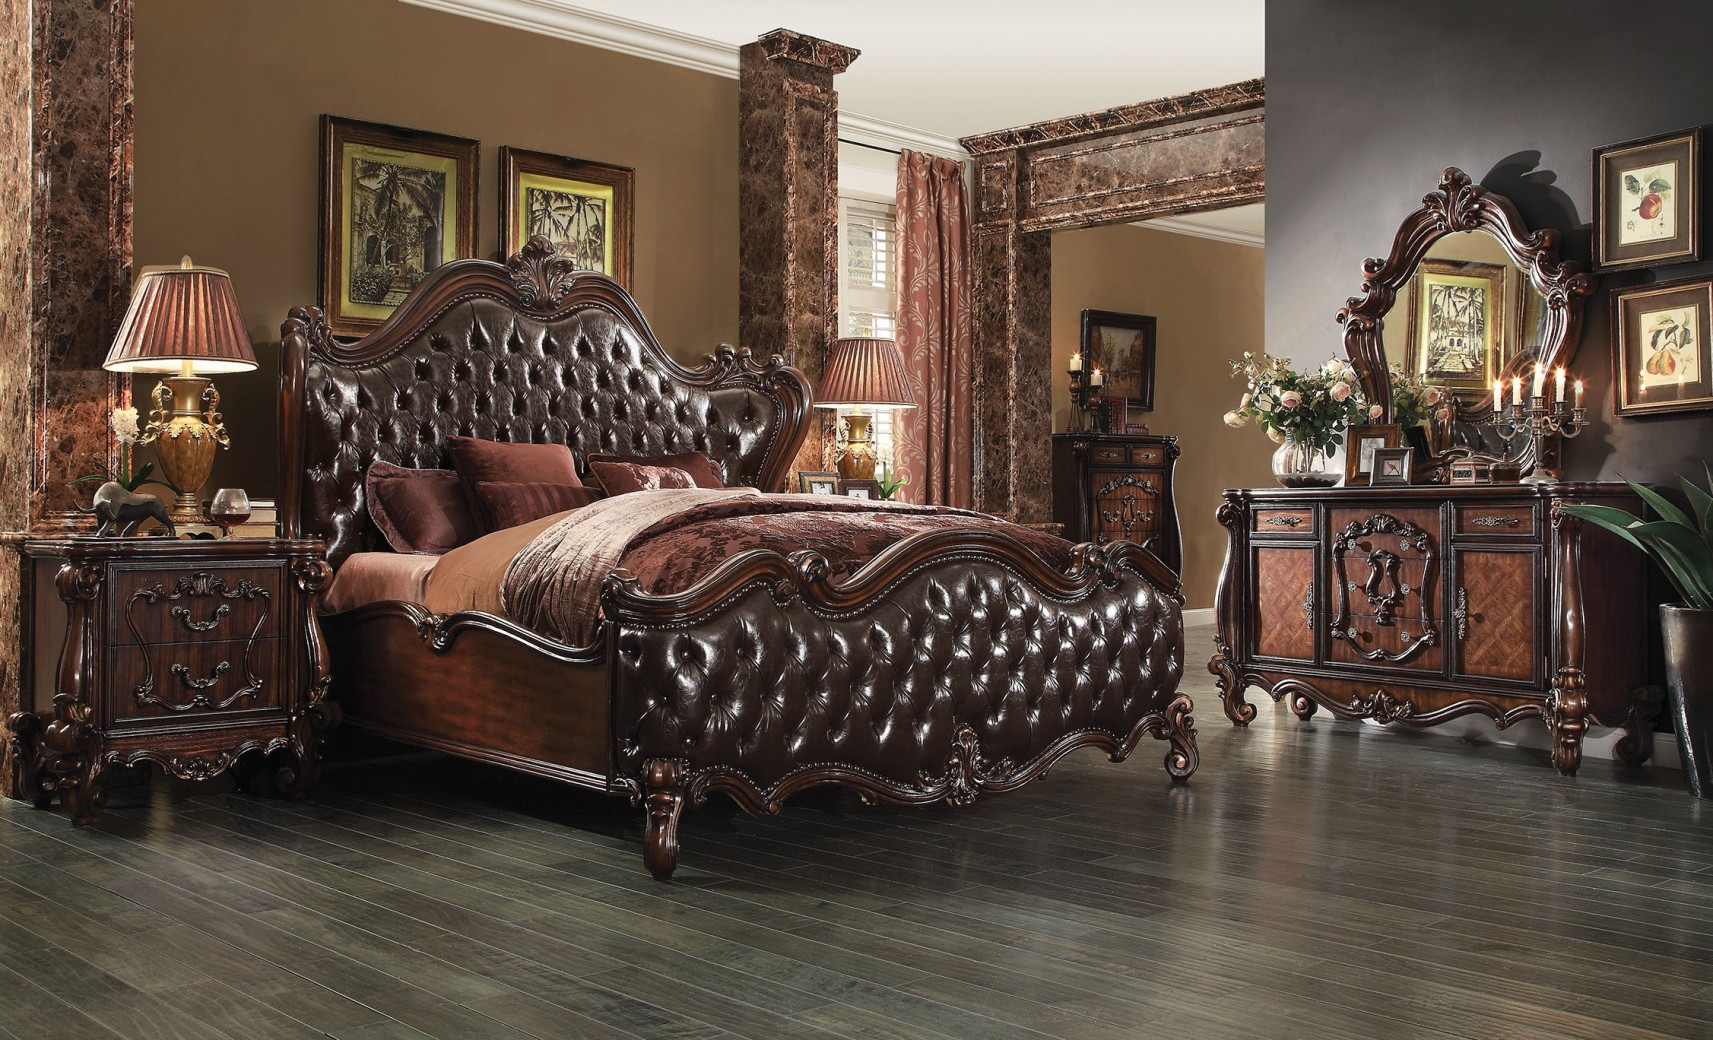 Wondrous Acme 21120 Versailles Bedroom Set Collection Cherry Oak Finish 2 Tone Dark Brown Pu Upholstery Home Interior And Landscaping Spoatsignezvosmurscom